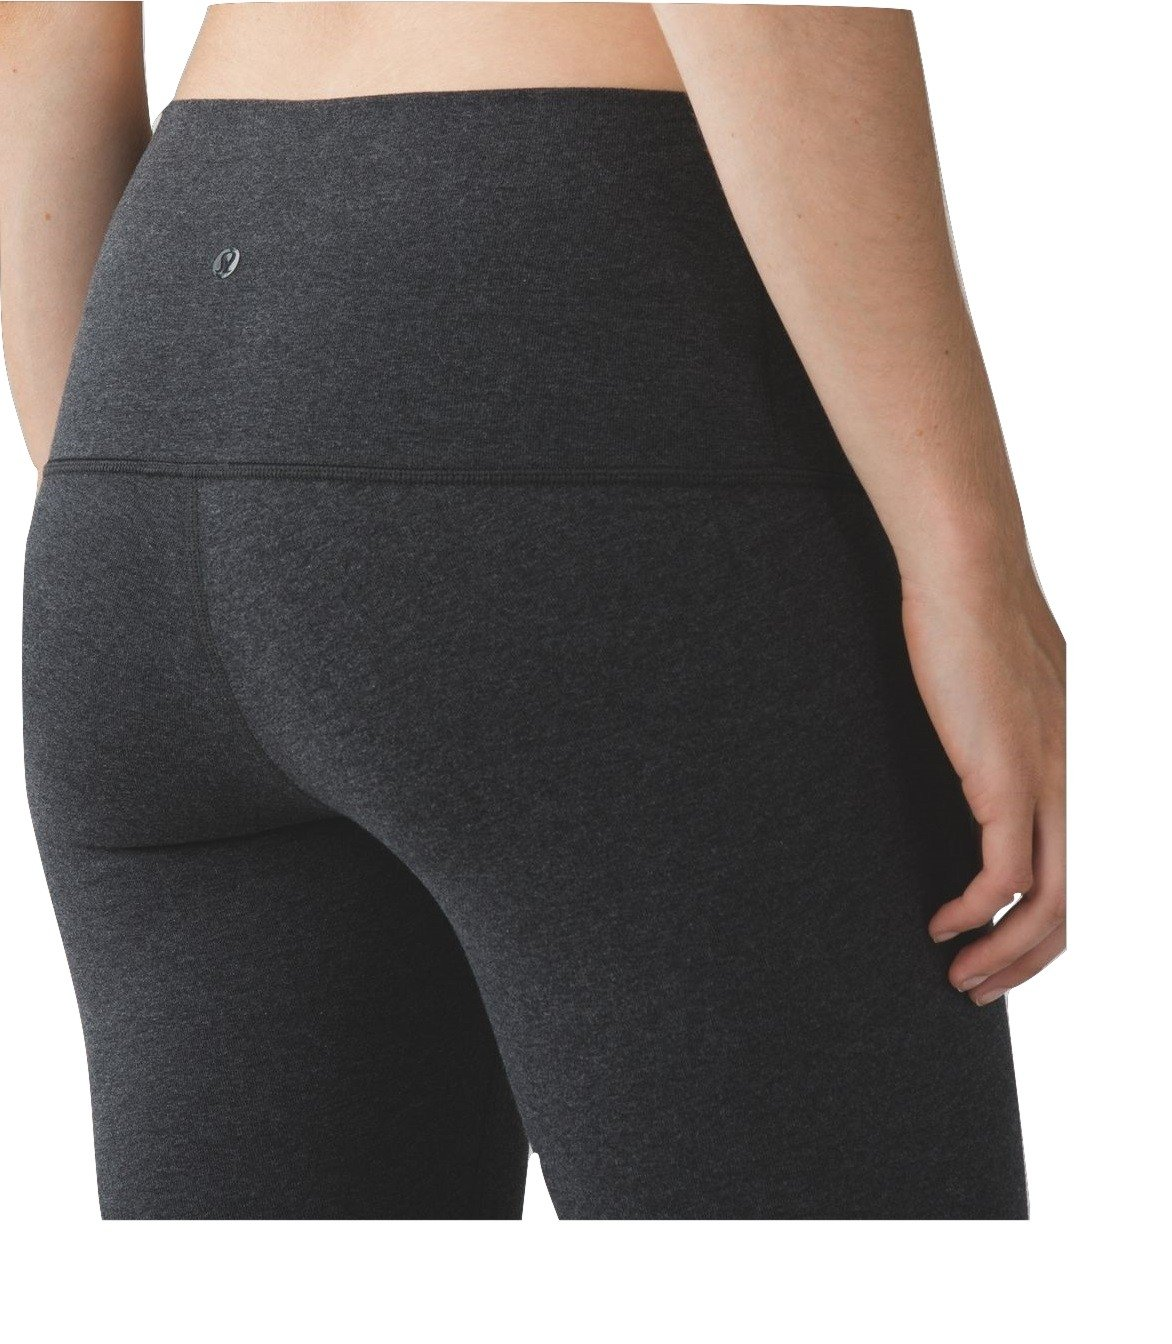 Lululemon Wunder Under Pant High Rise Cotton Yoga Pants (Heathered Black, 2)